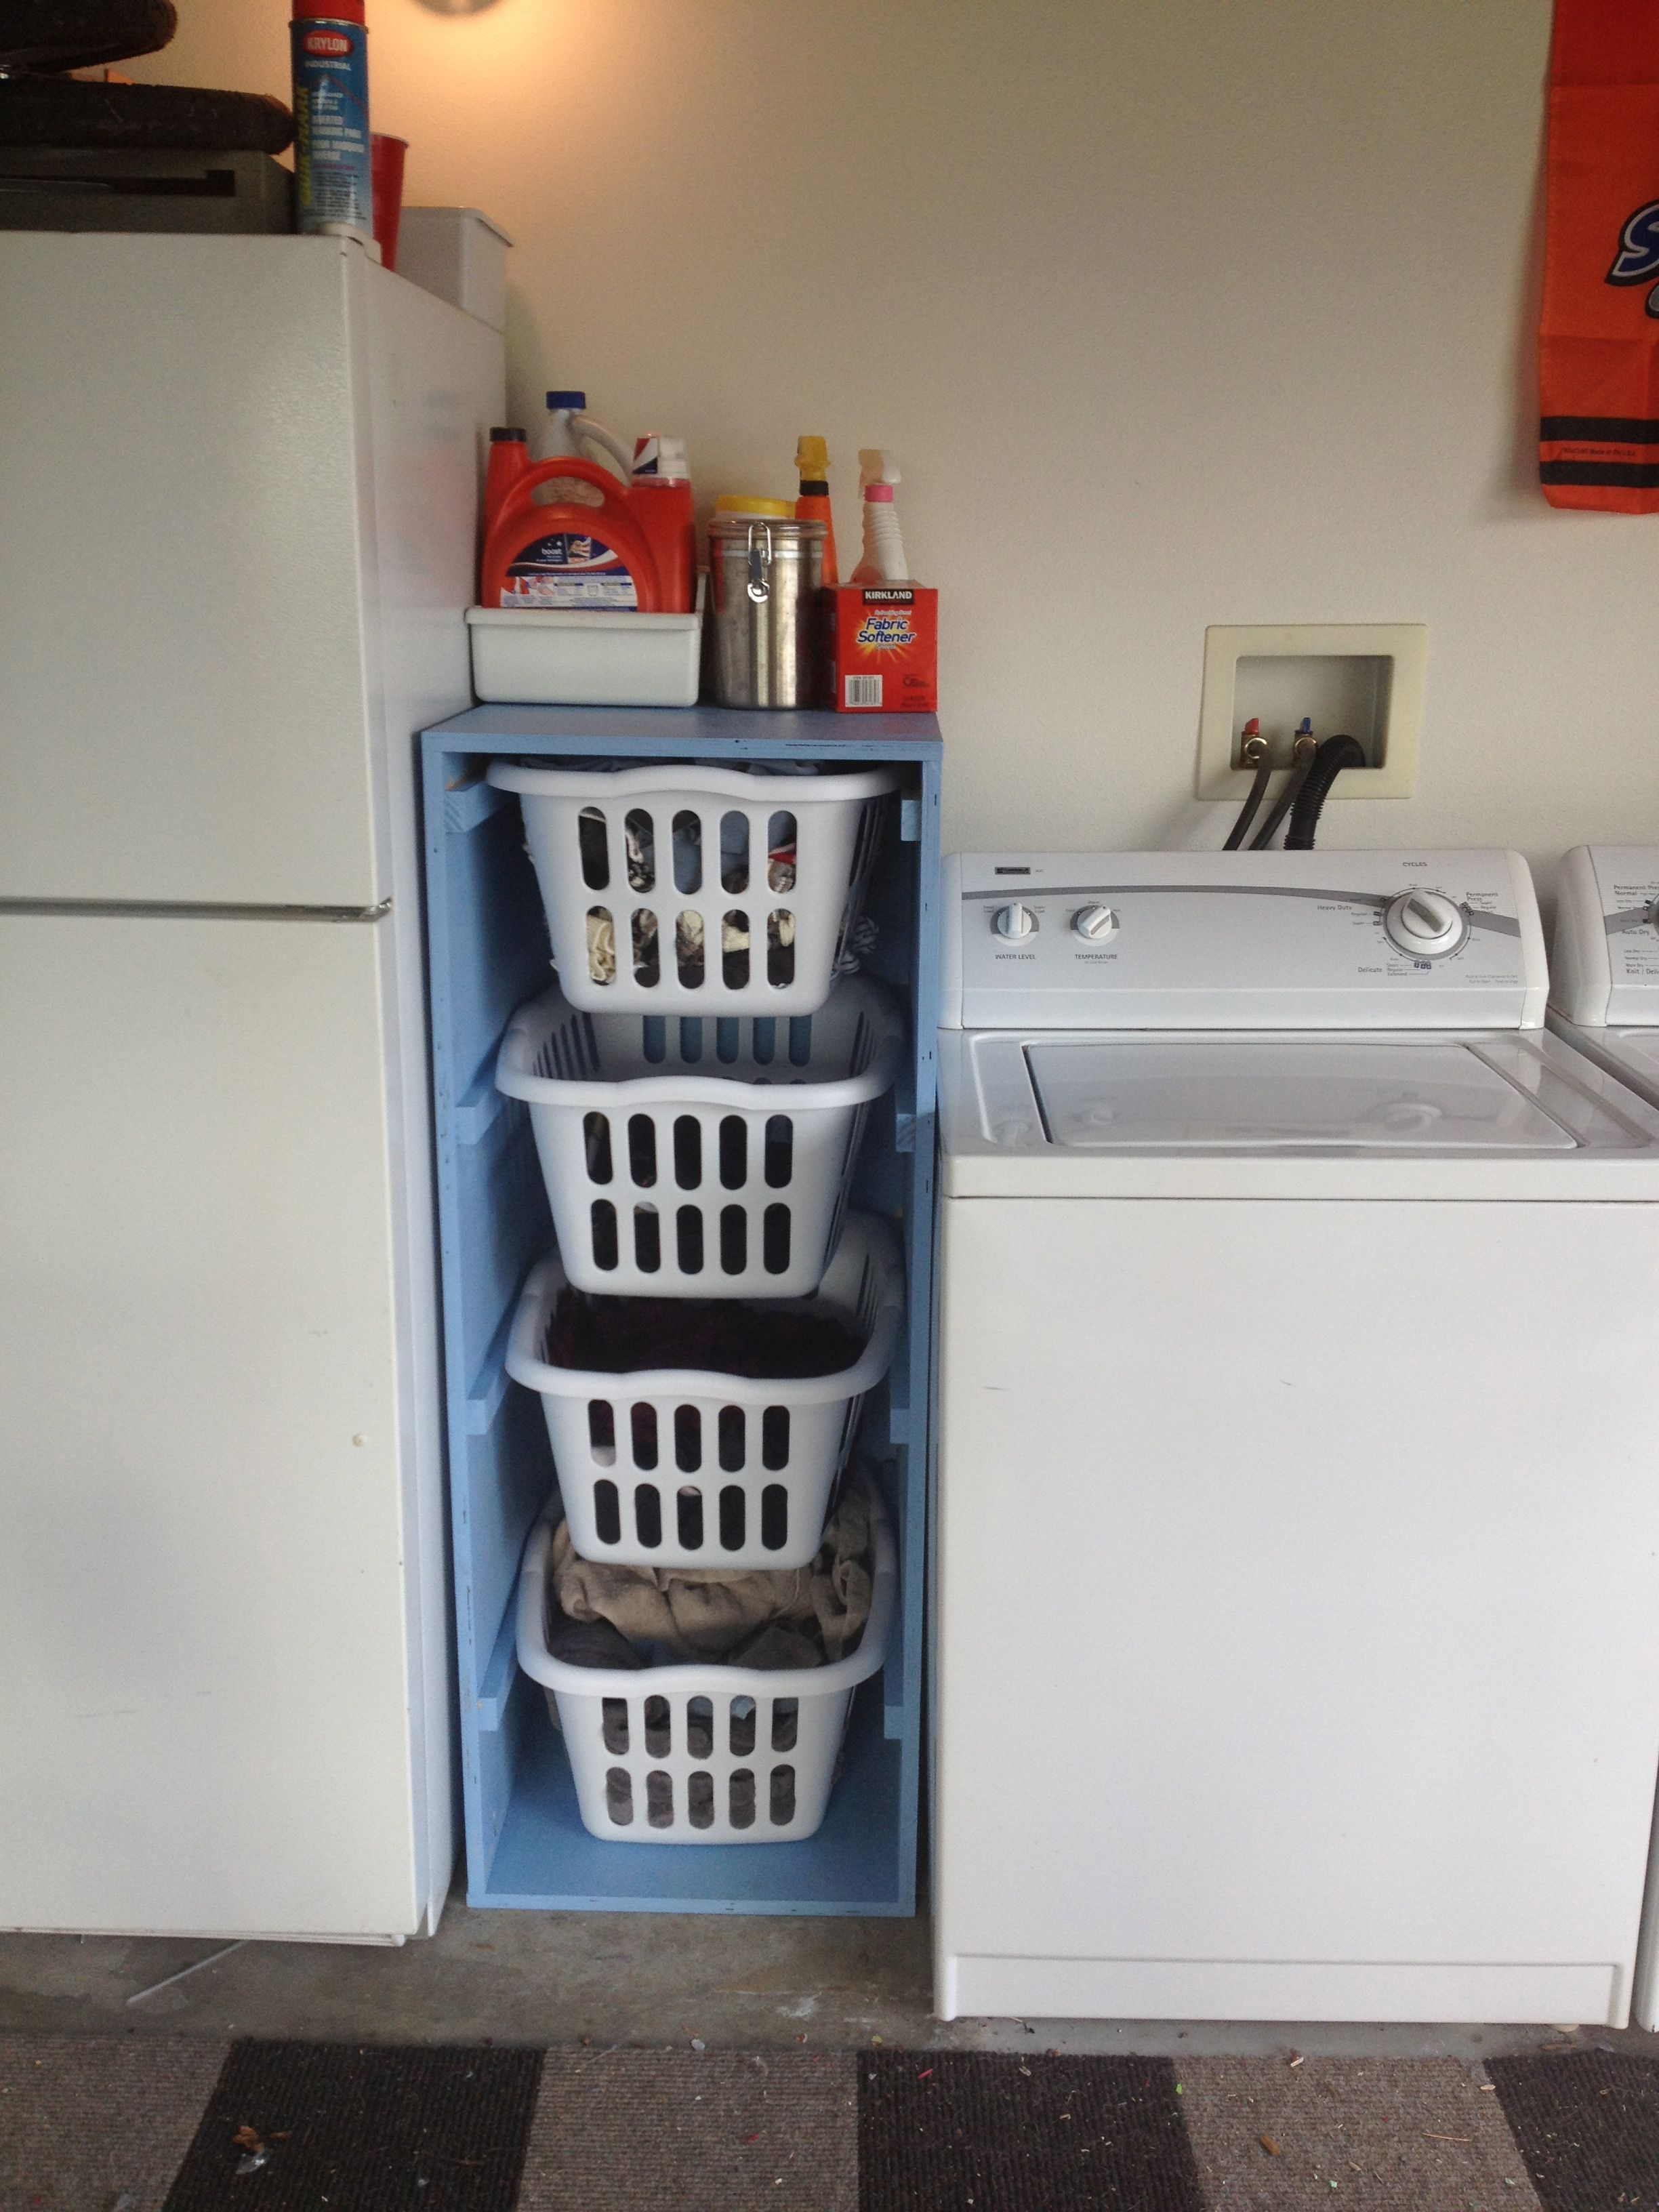 Laundry sorter do it yourself home projects from ana white cosas laundry sorter do it yourself home projects from ana white solutioingenieria Choice Image